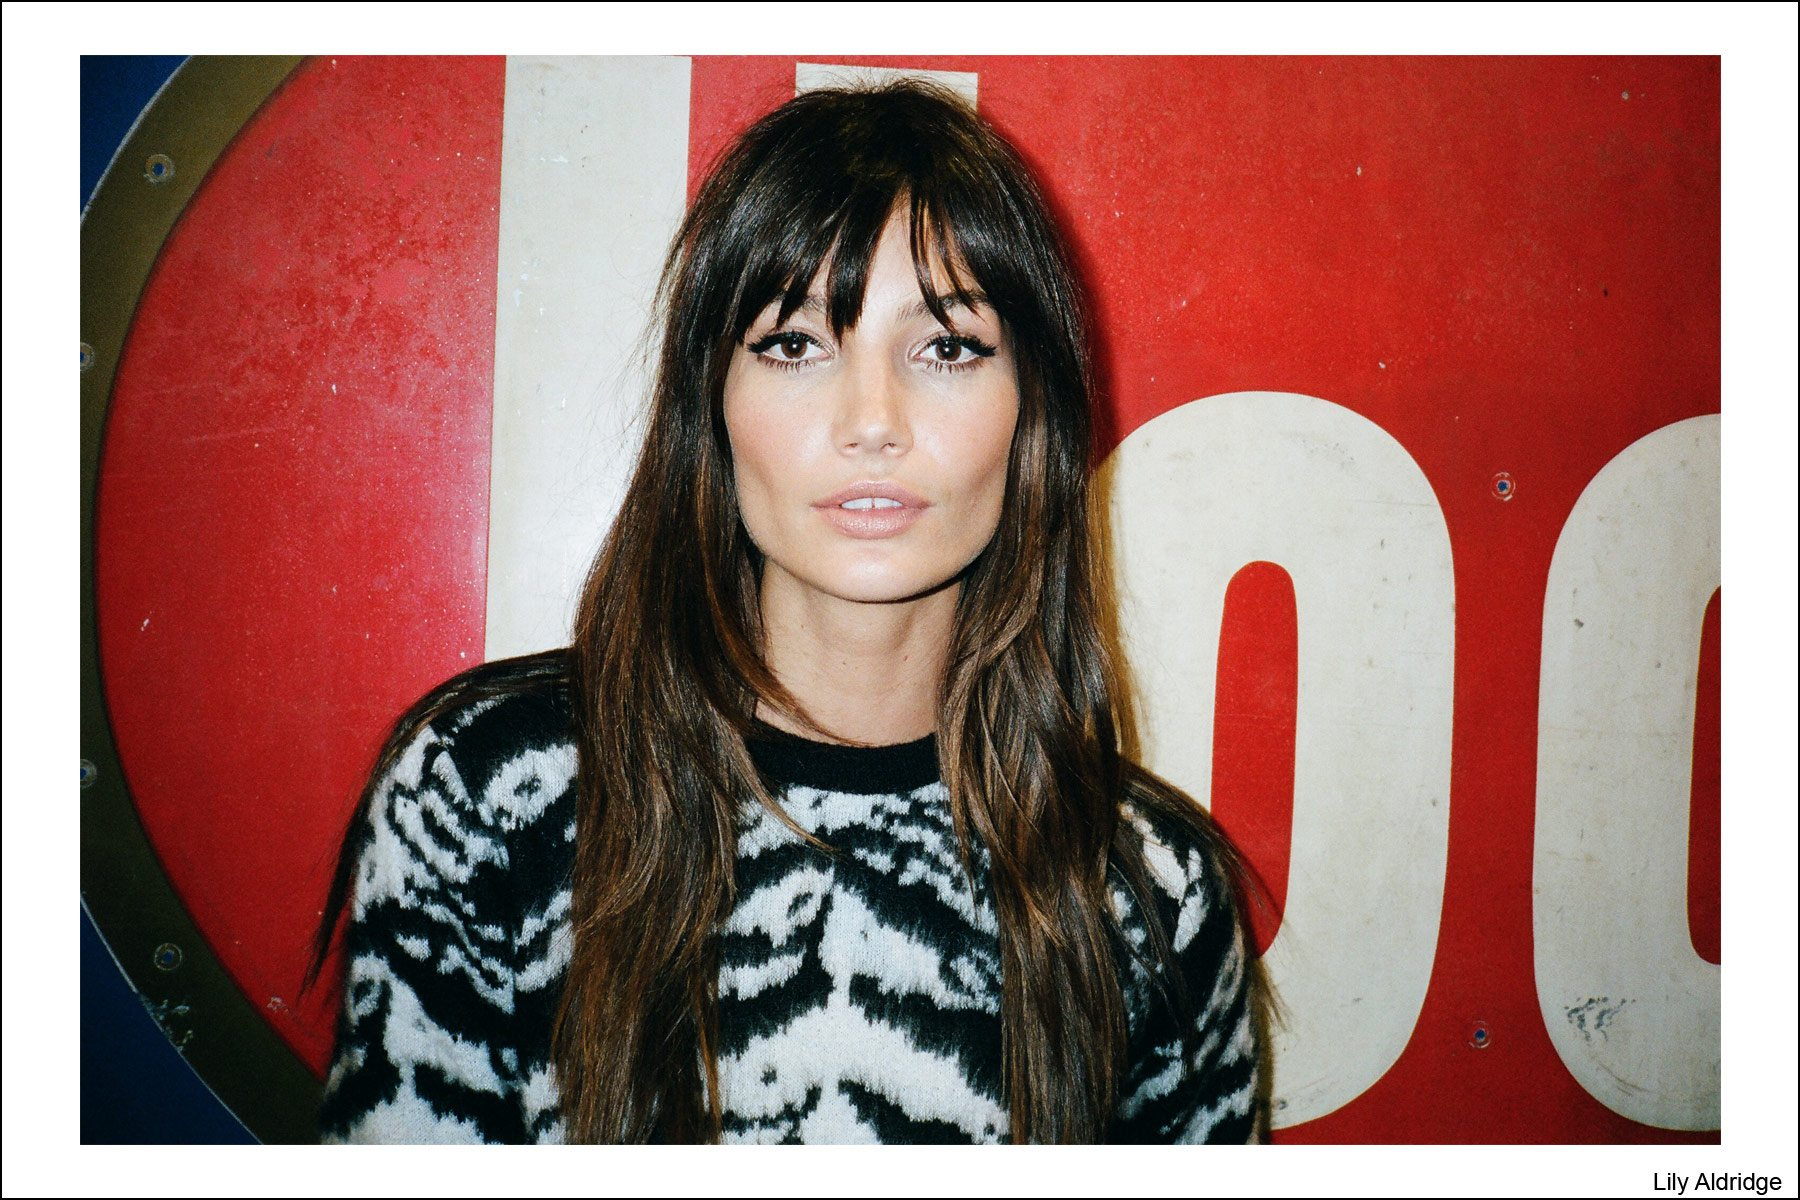 Model Lily Aldridge, photographed by Kristin Gallegos. Ponyboy magazine NY.